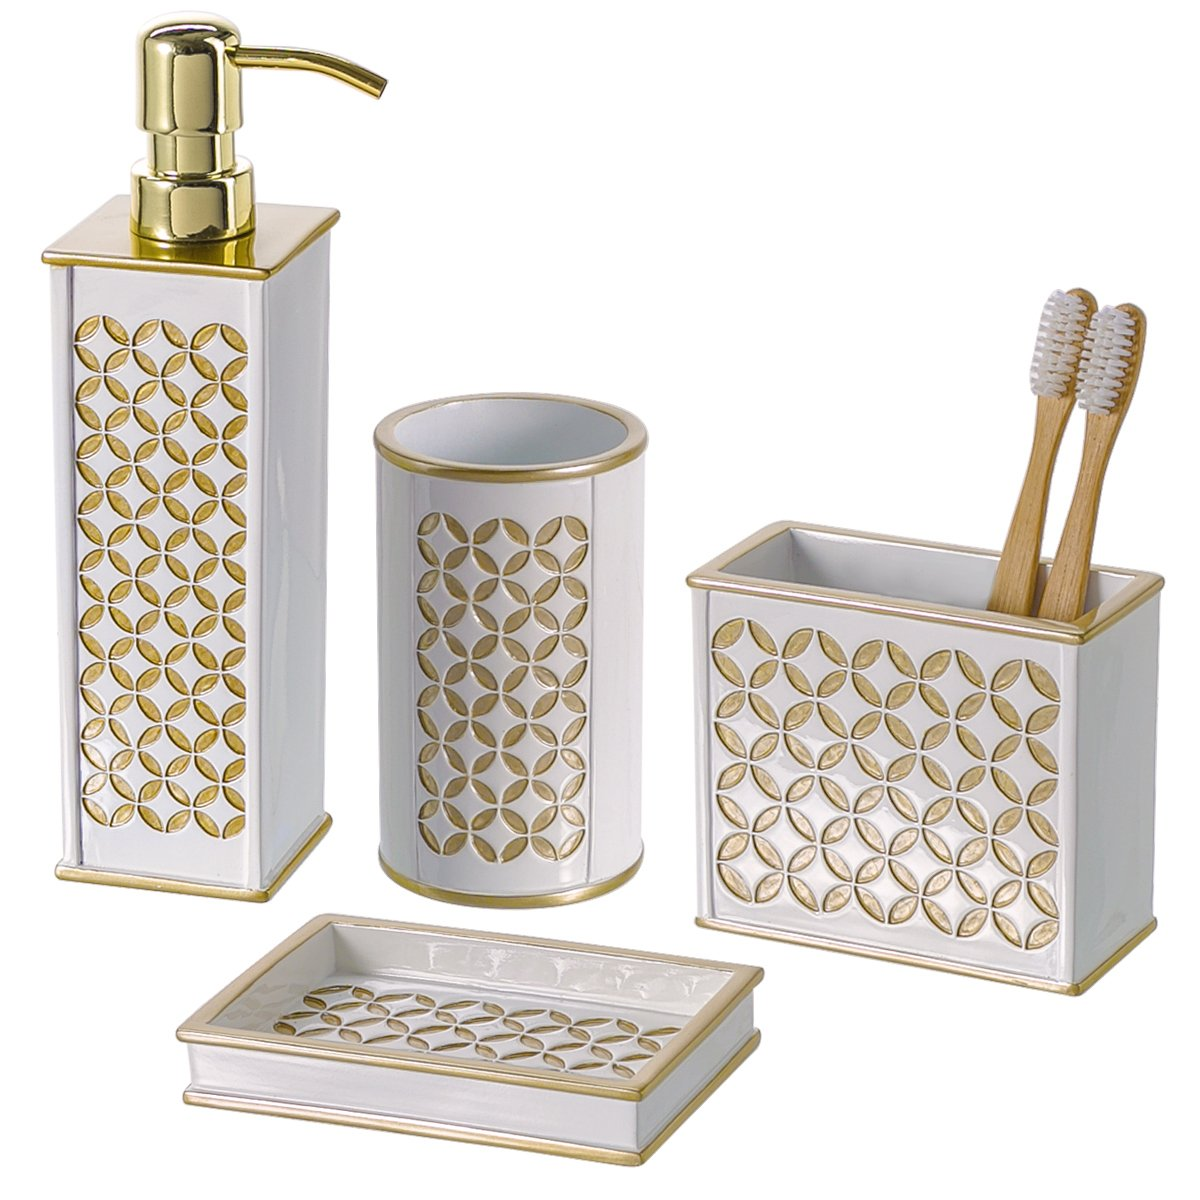 4 piece bathroom accessories set dispenser toothbrush for White bath accessories sets